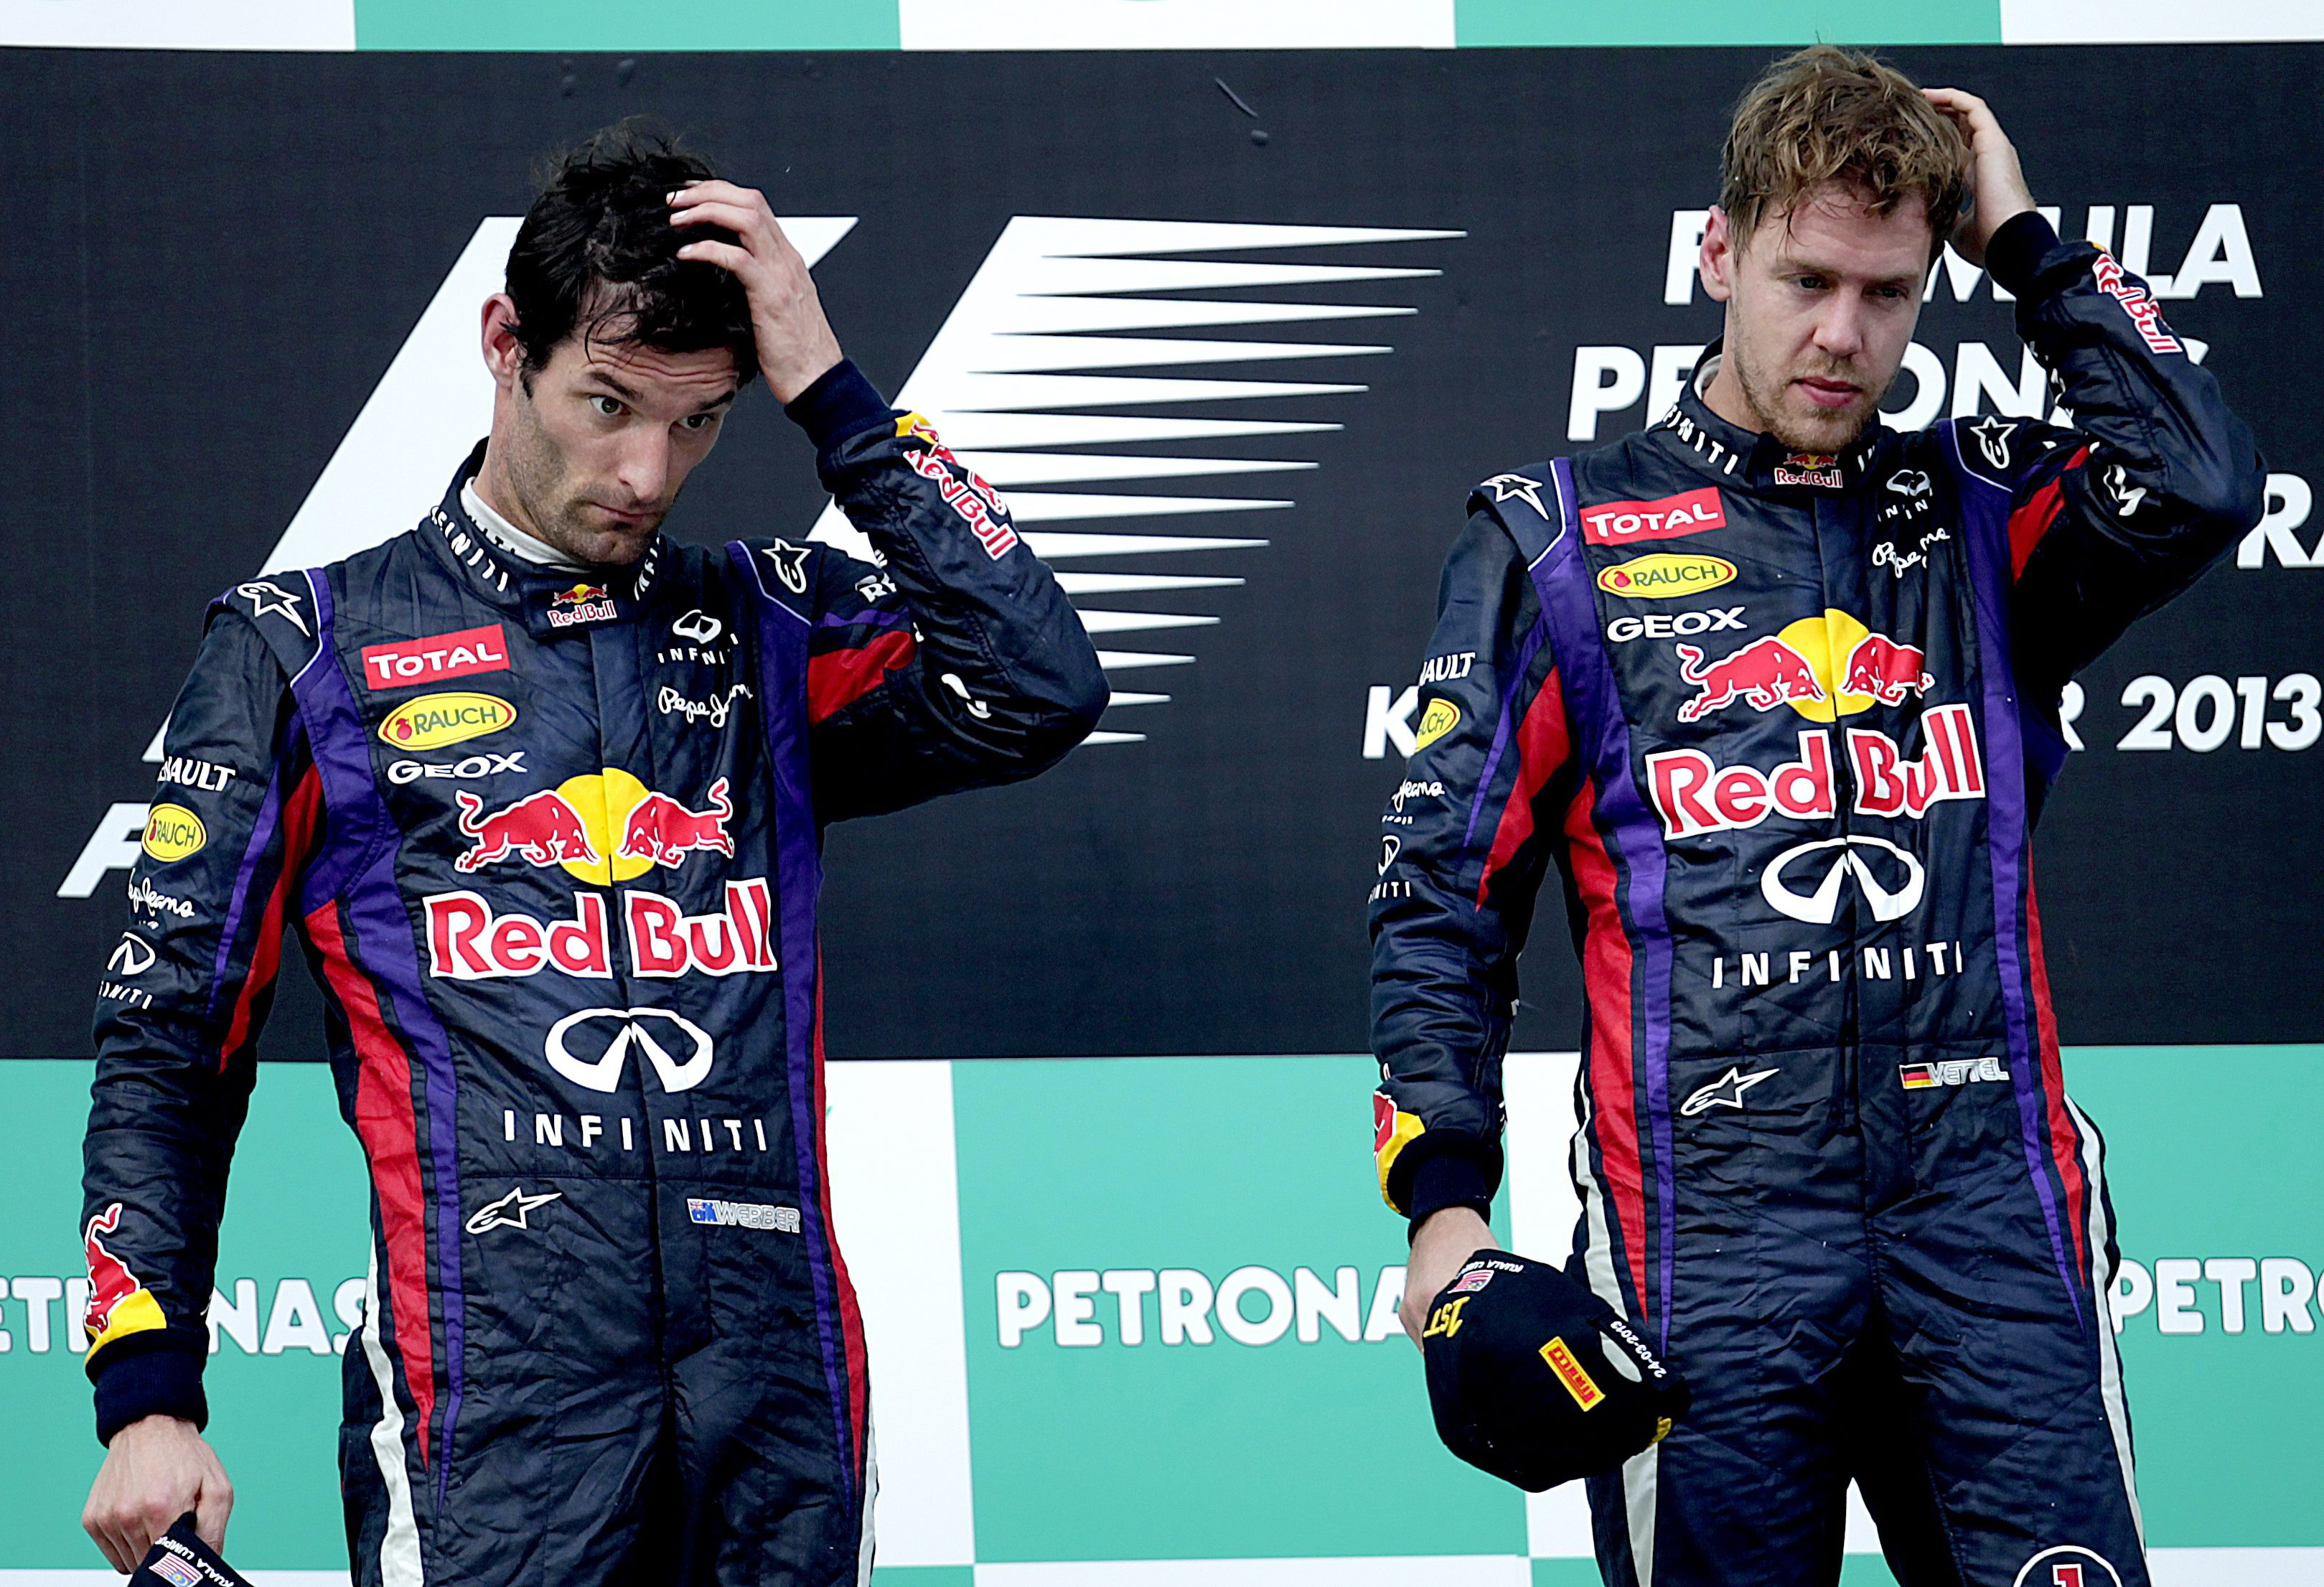 Christian Horner: Sebastian Vettel and Mark Webber 'not after revenge'